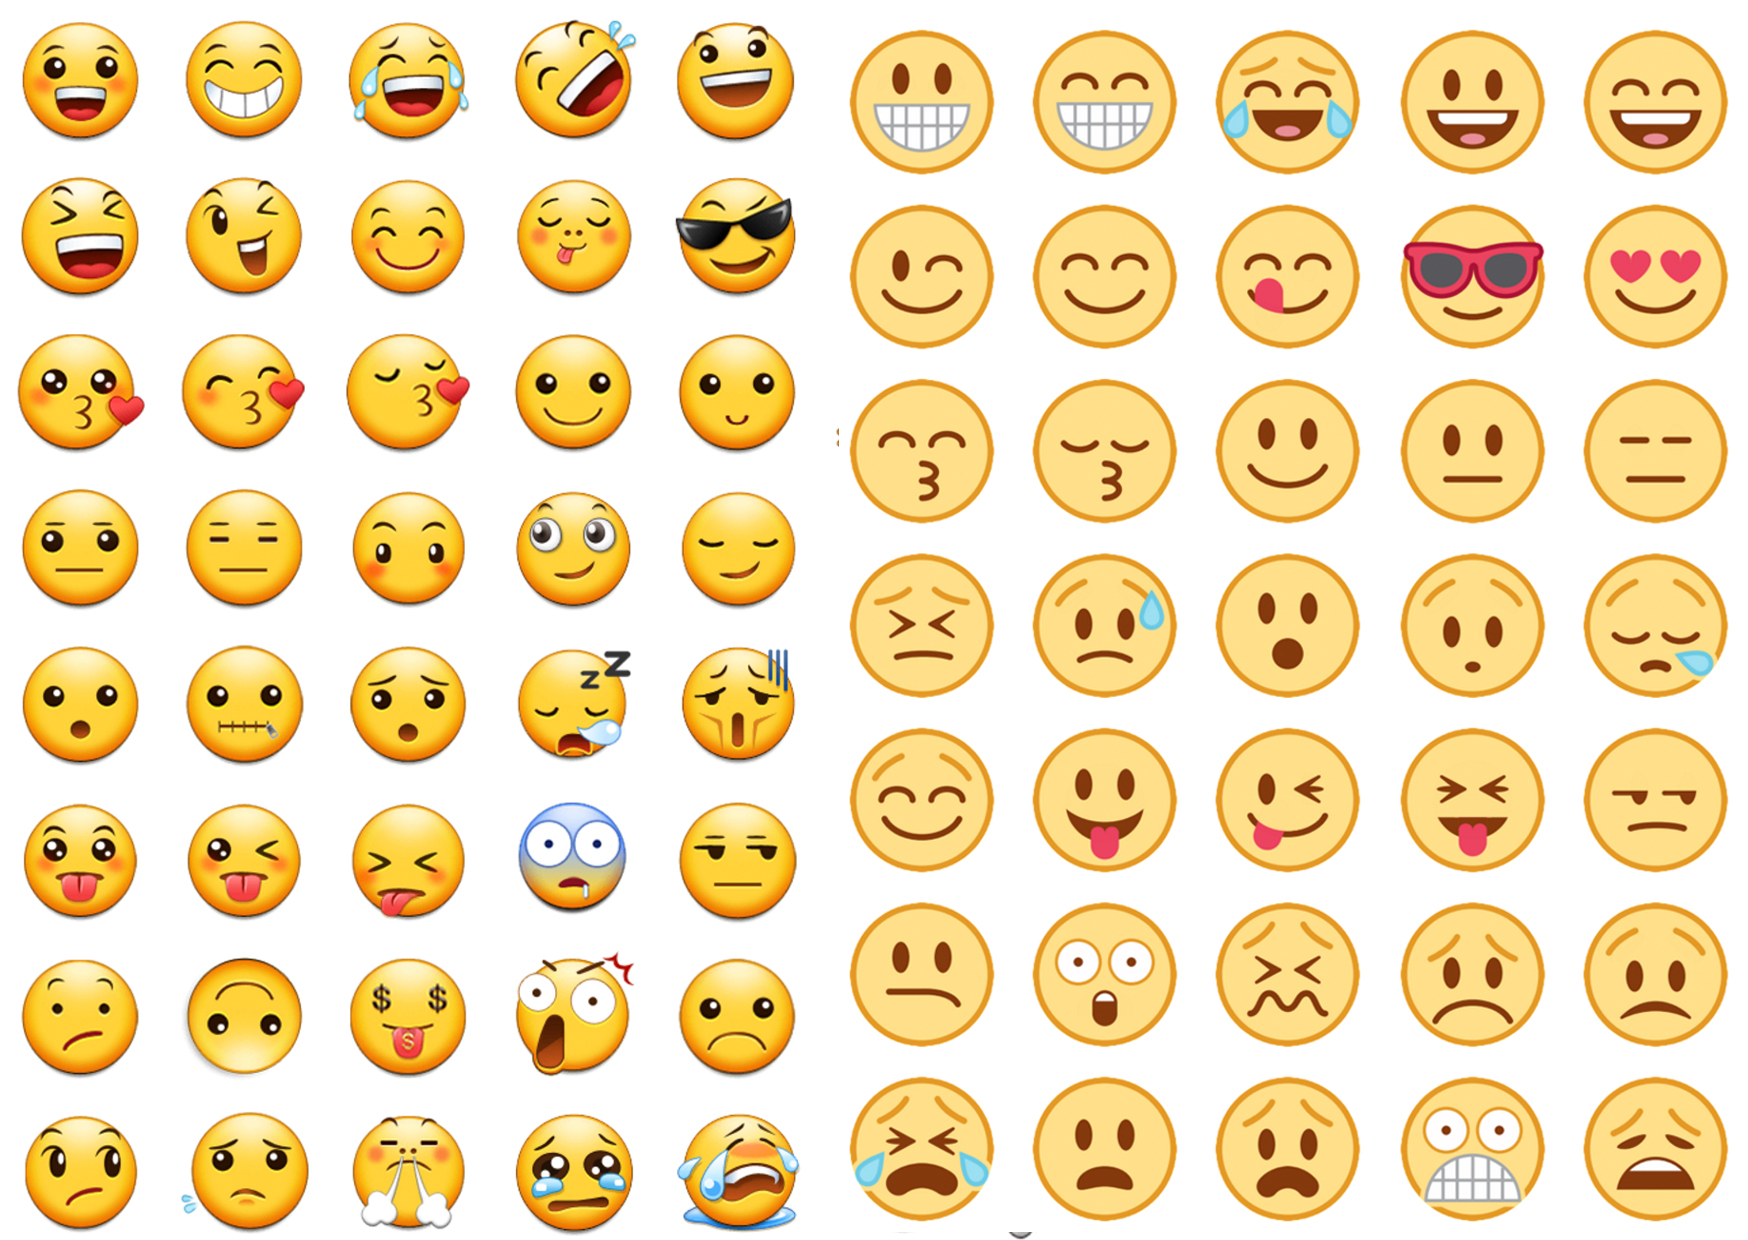 How To Switch Between Different Styles Of Emojis On Android